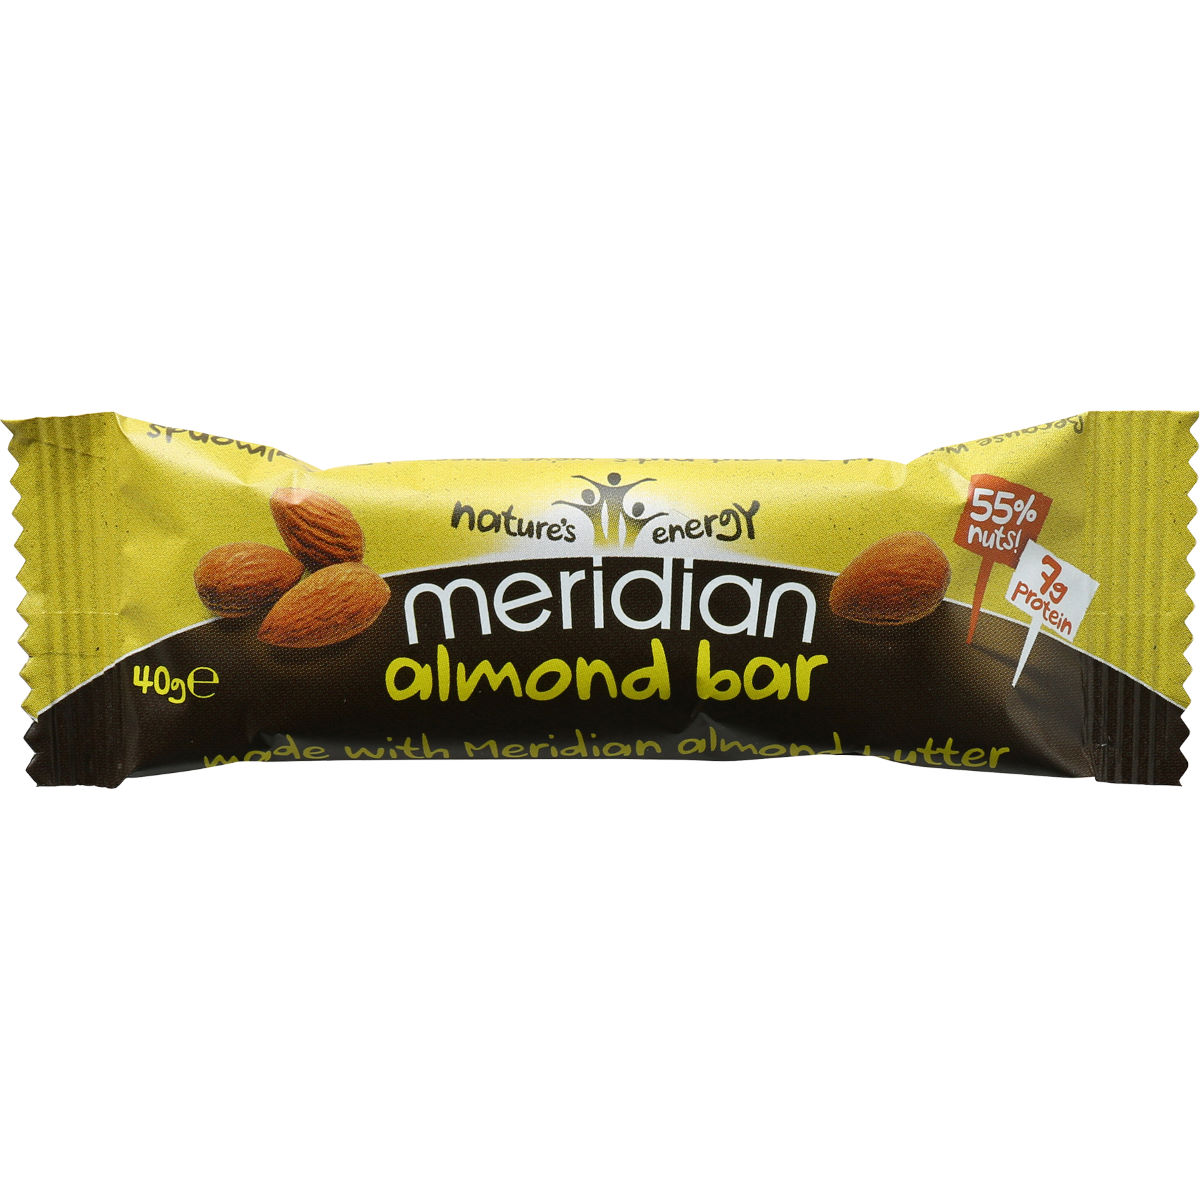 Barre Meridian Amandes (18 x 40 g) - 18 x 40g 11-20 Almond Barres